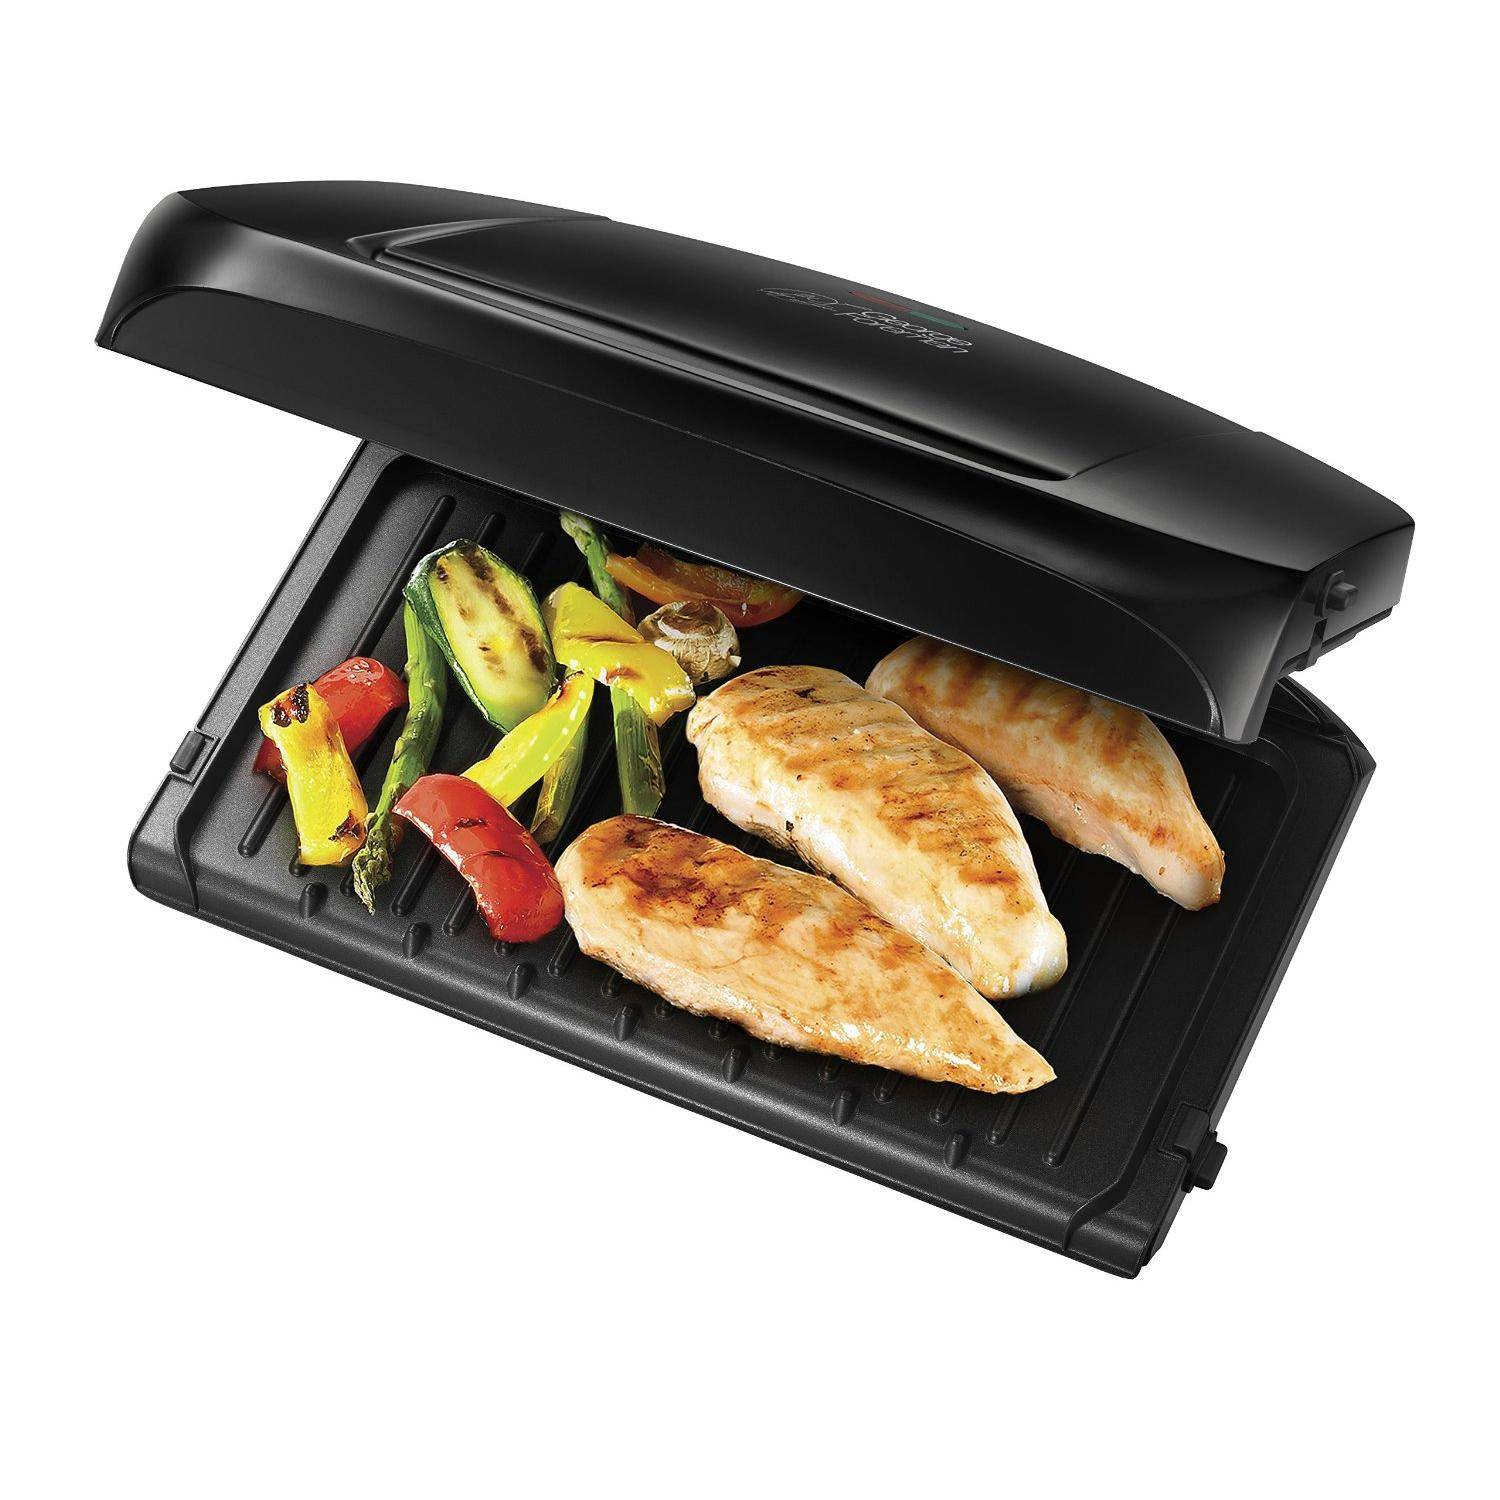 George Foreman Grill George Foreman 20840 5 portions